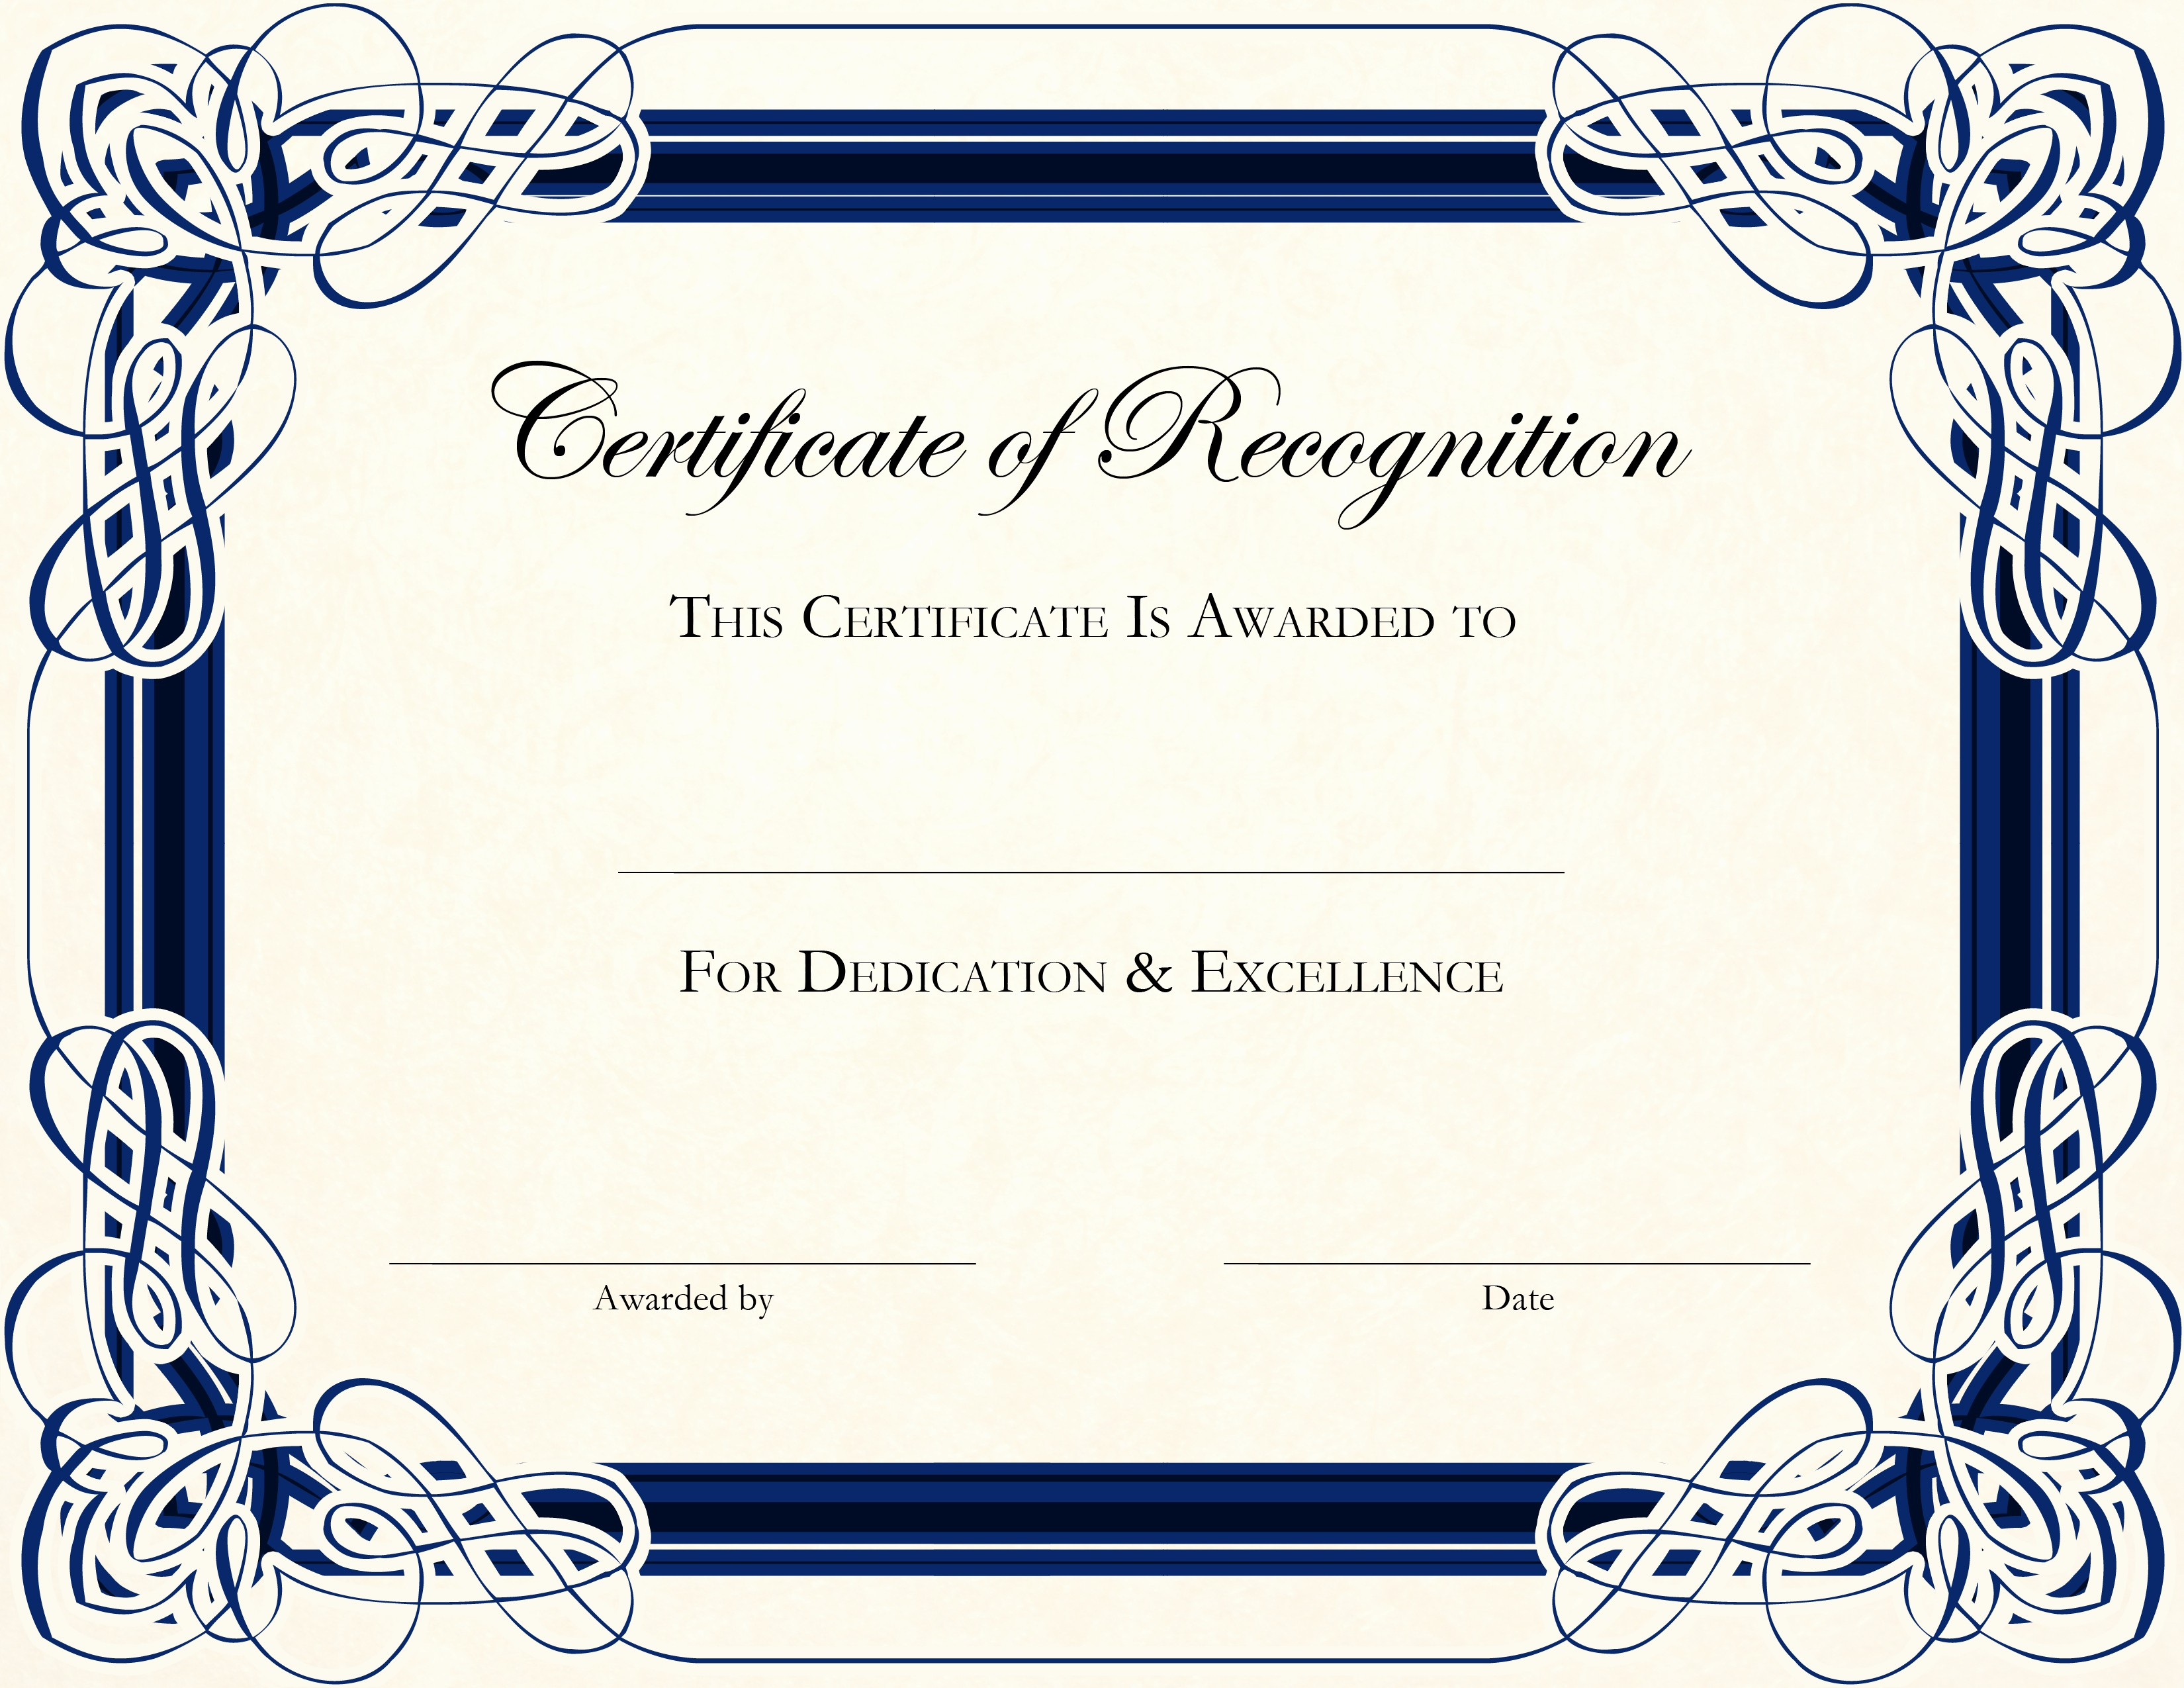 Free Downloadable Award Certificate Templates Lovely Free Certificate Design Templates